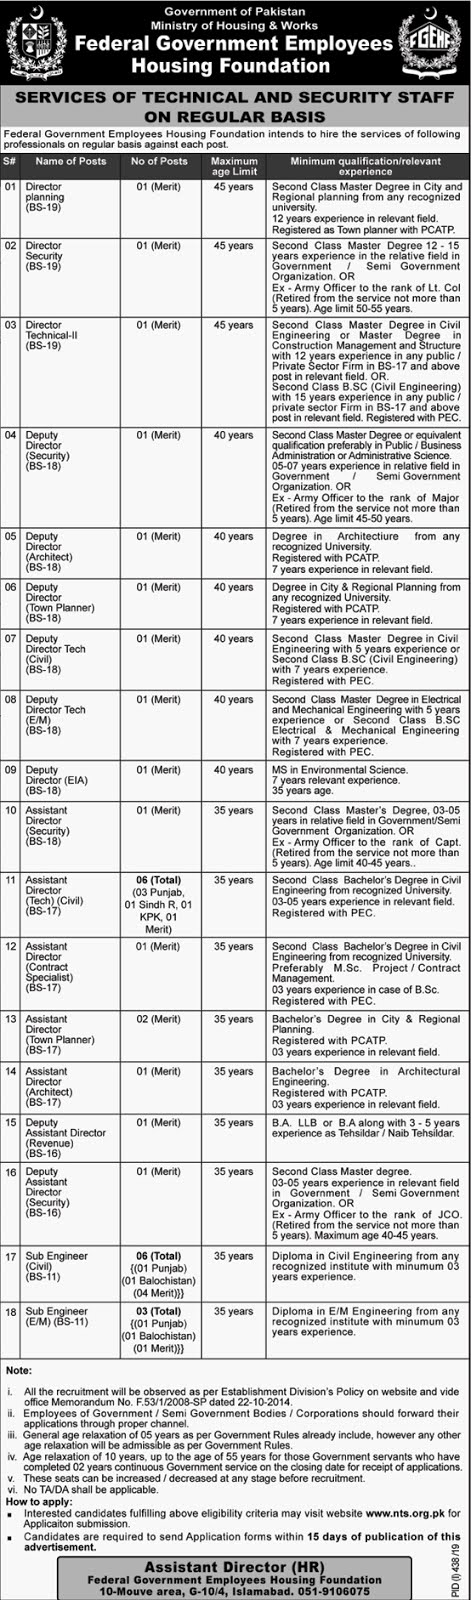 Federal Govt Employees Housing Foundation Jobs 2019 Ads No 1